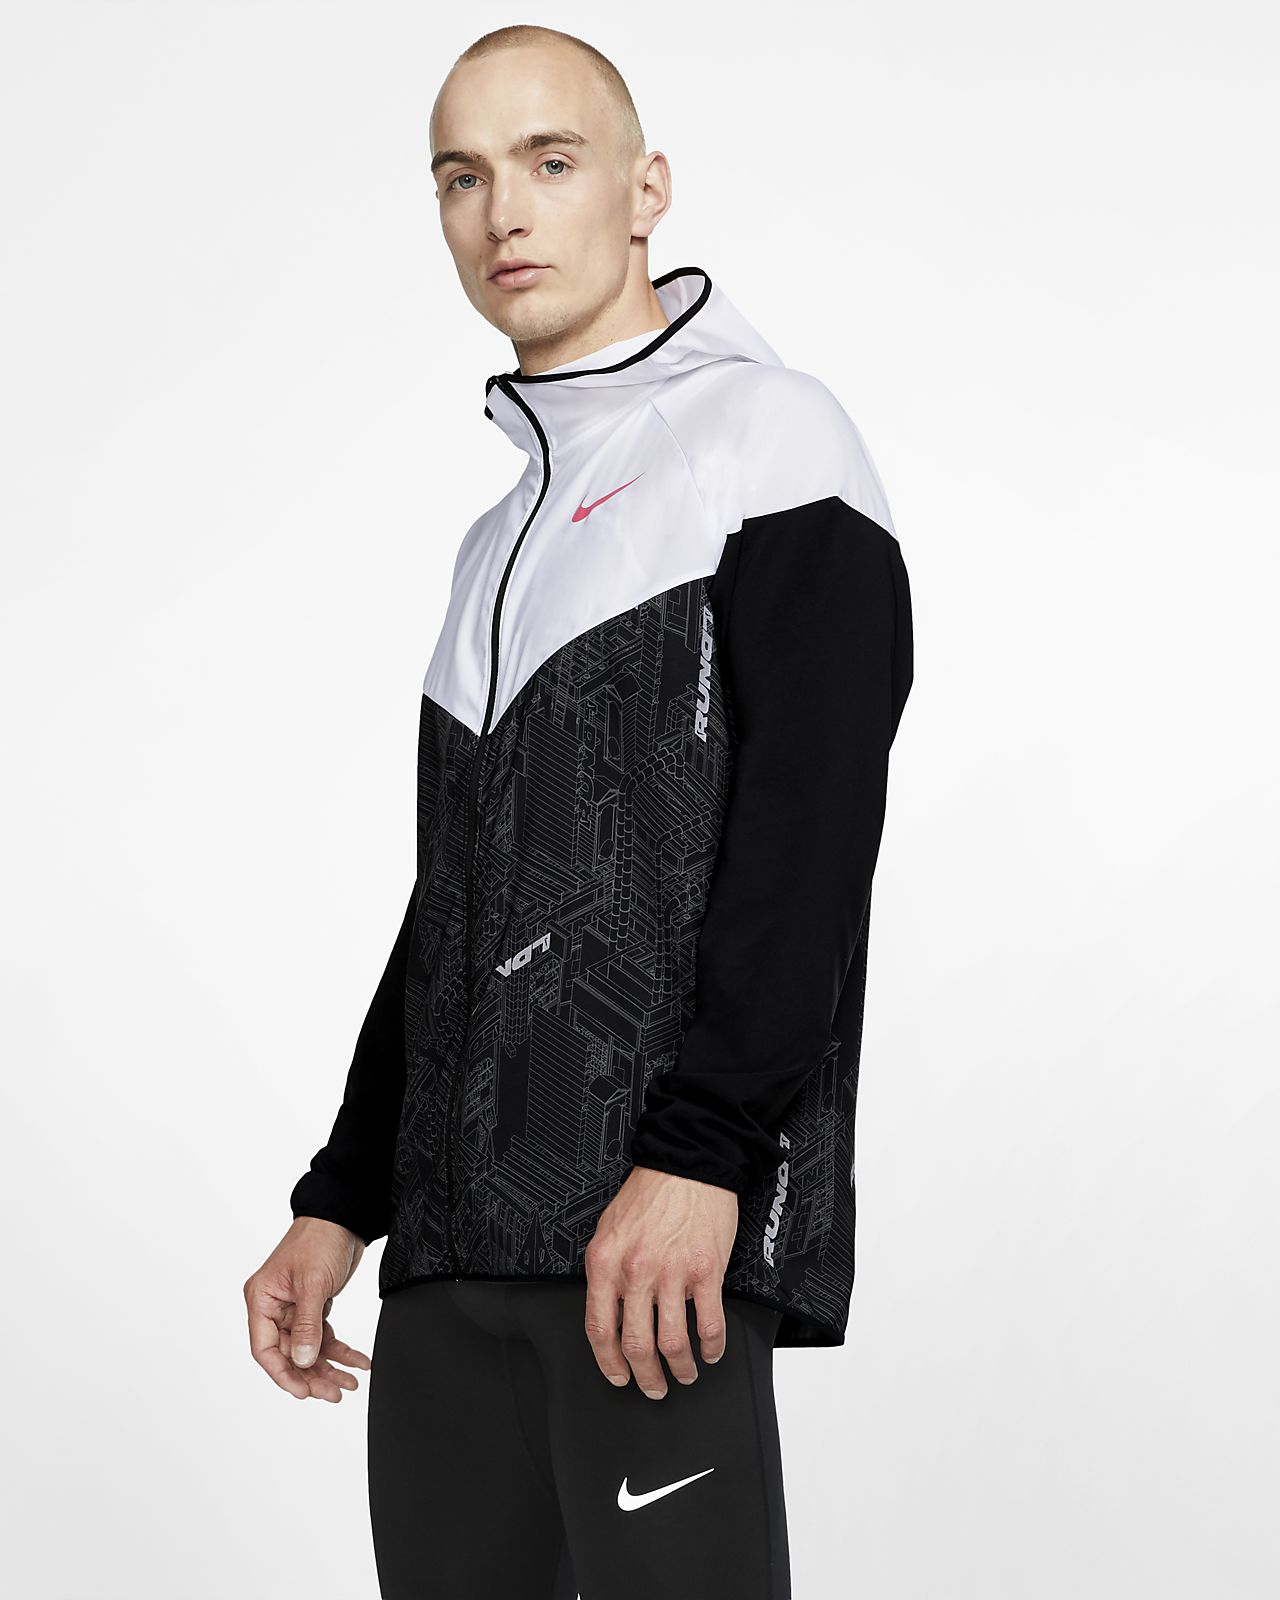 Nike Windrunner (London) Unisex Running Jacket